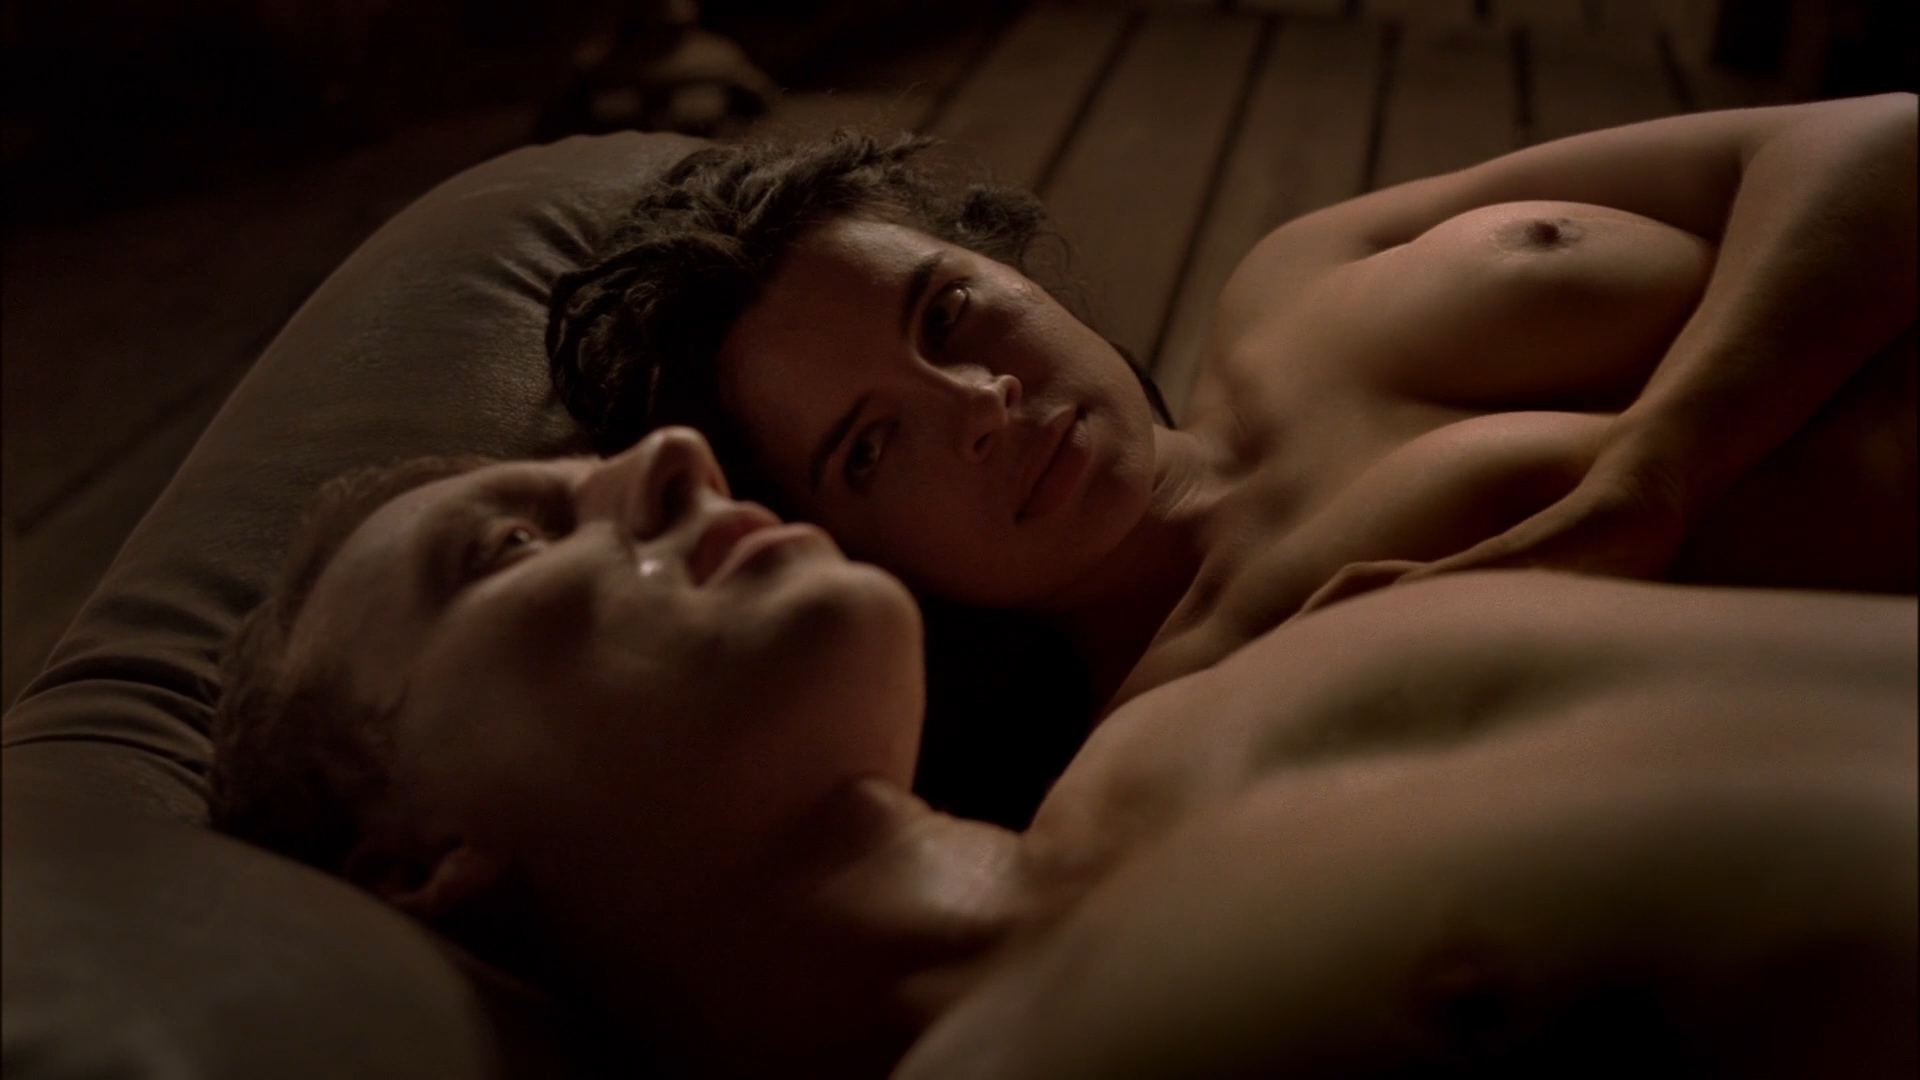 Assured, Polly walker nude video agree